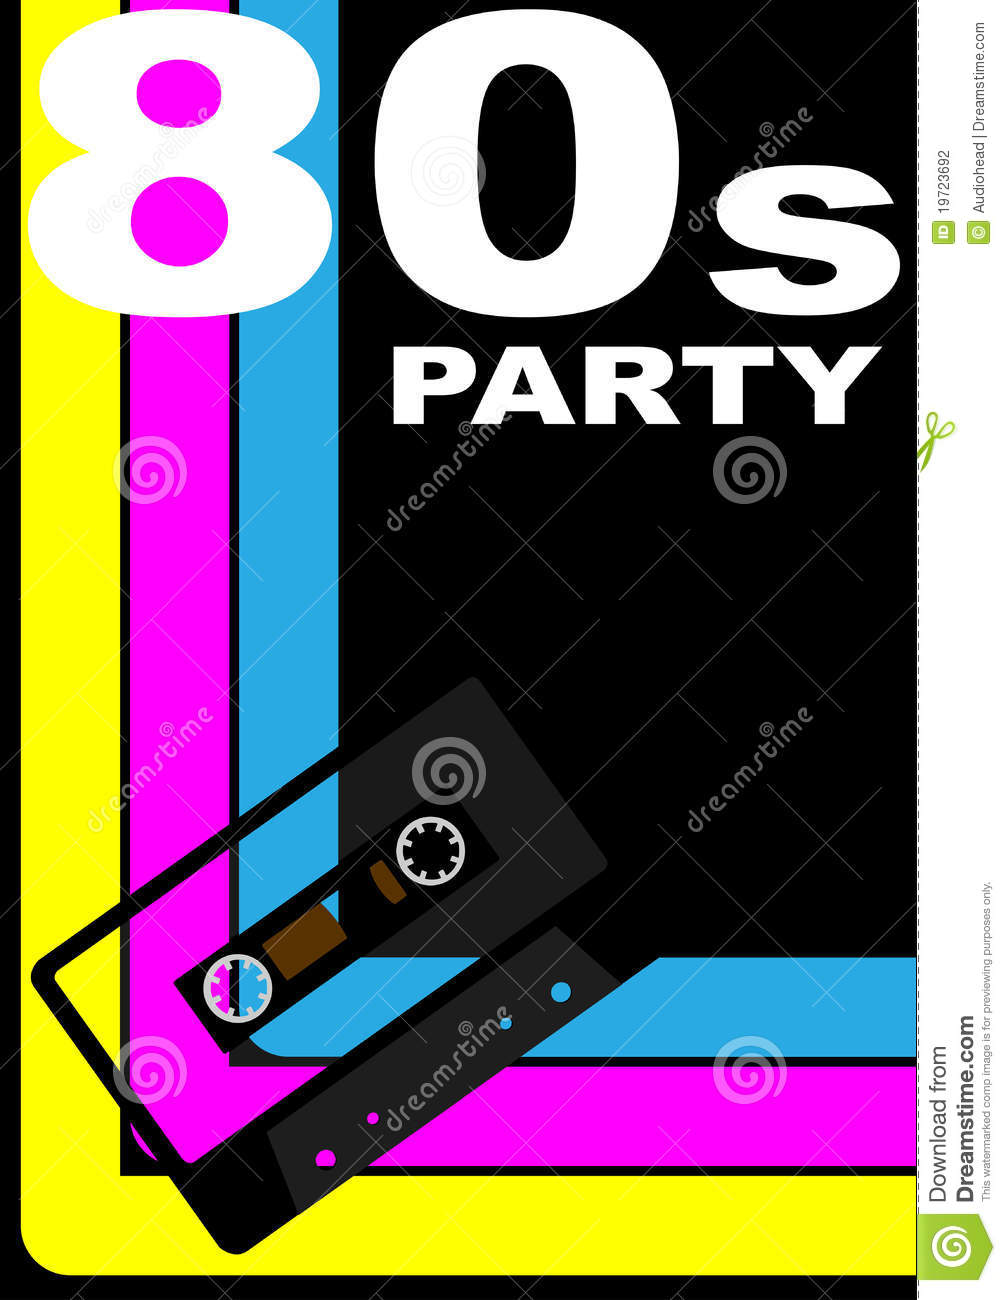 80s Party Poster stock vector. Image of party, cassette - 19723692